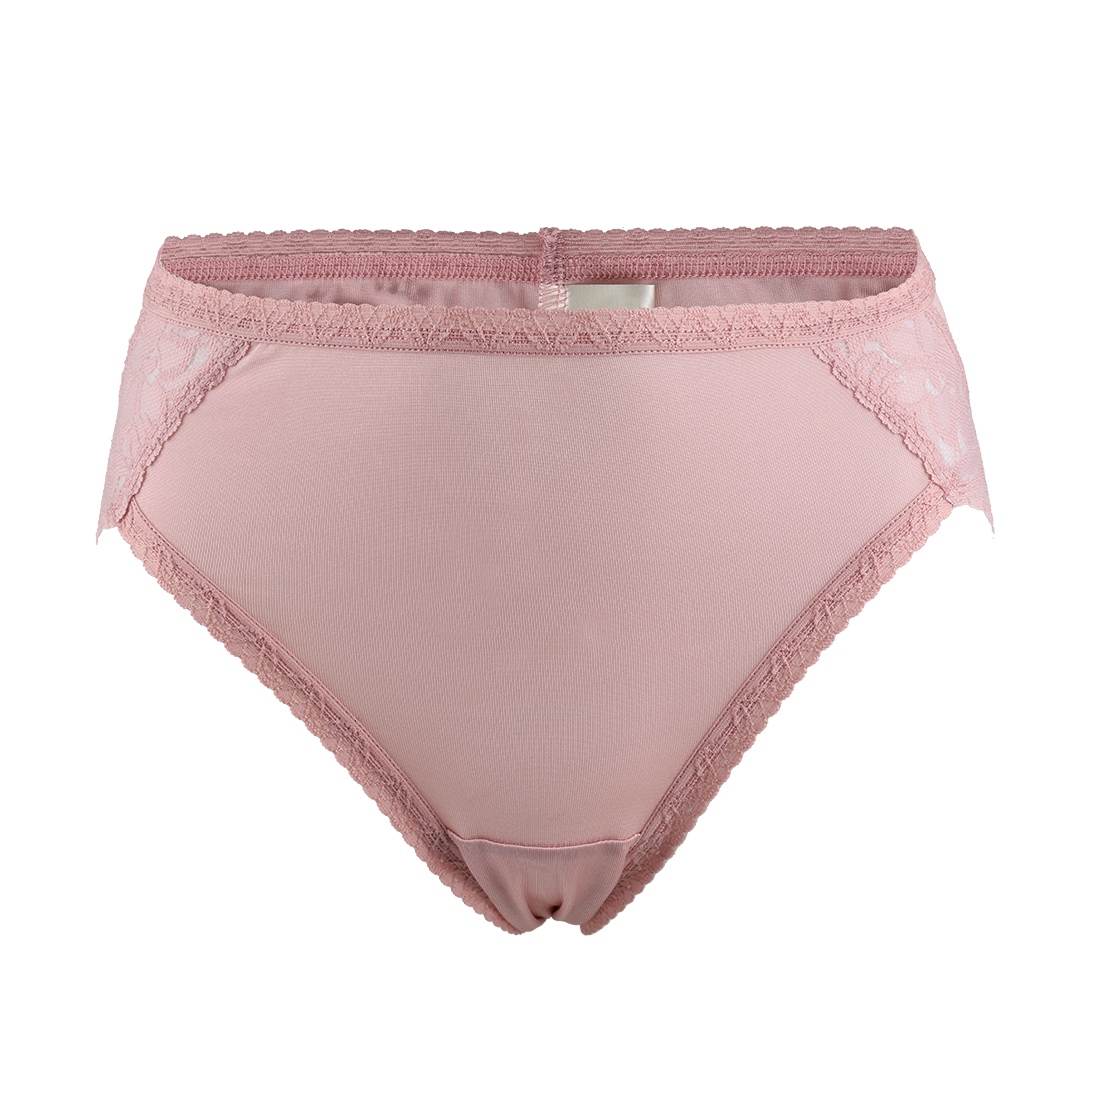 Women Mulberry Silk Laced Breathable Translucent Hi-Cut Panties Pink Meidum